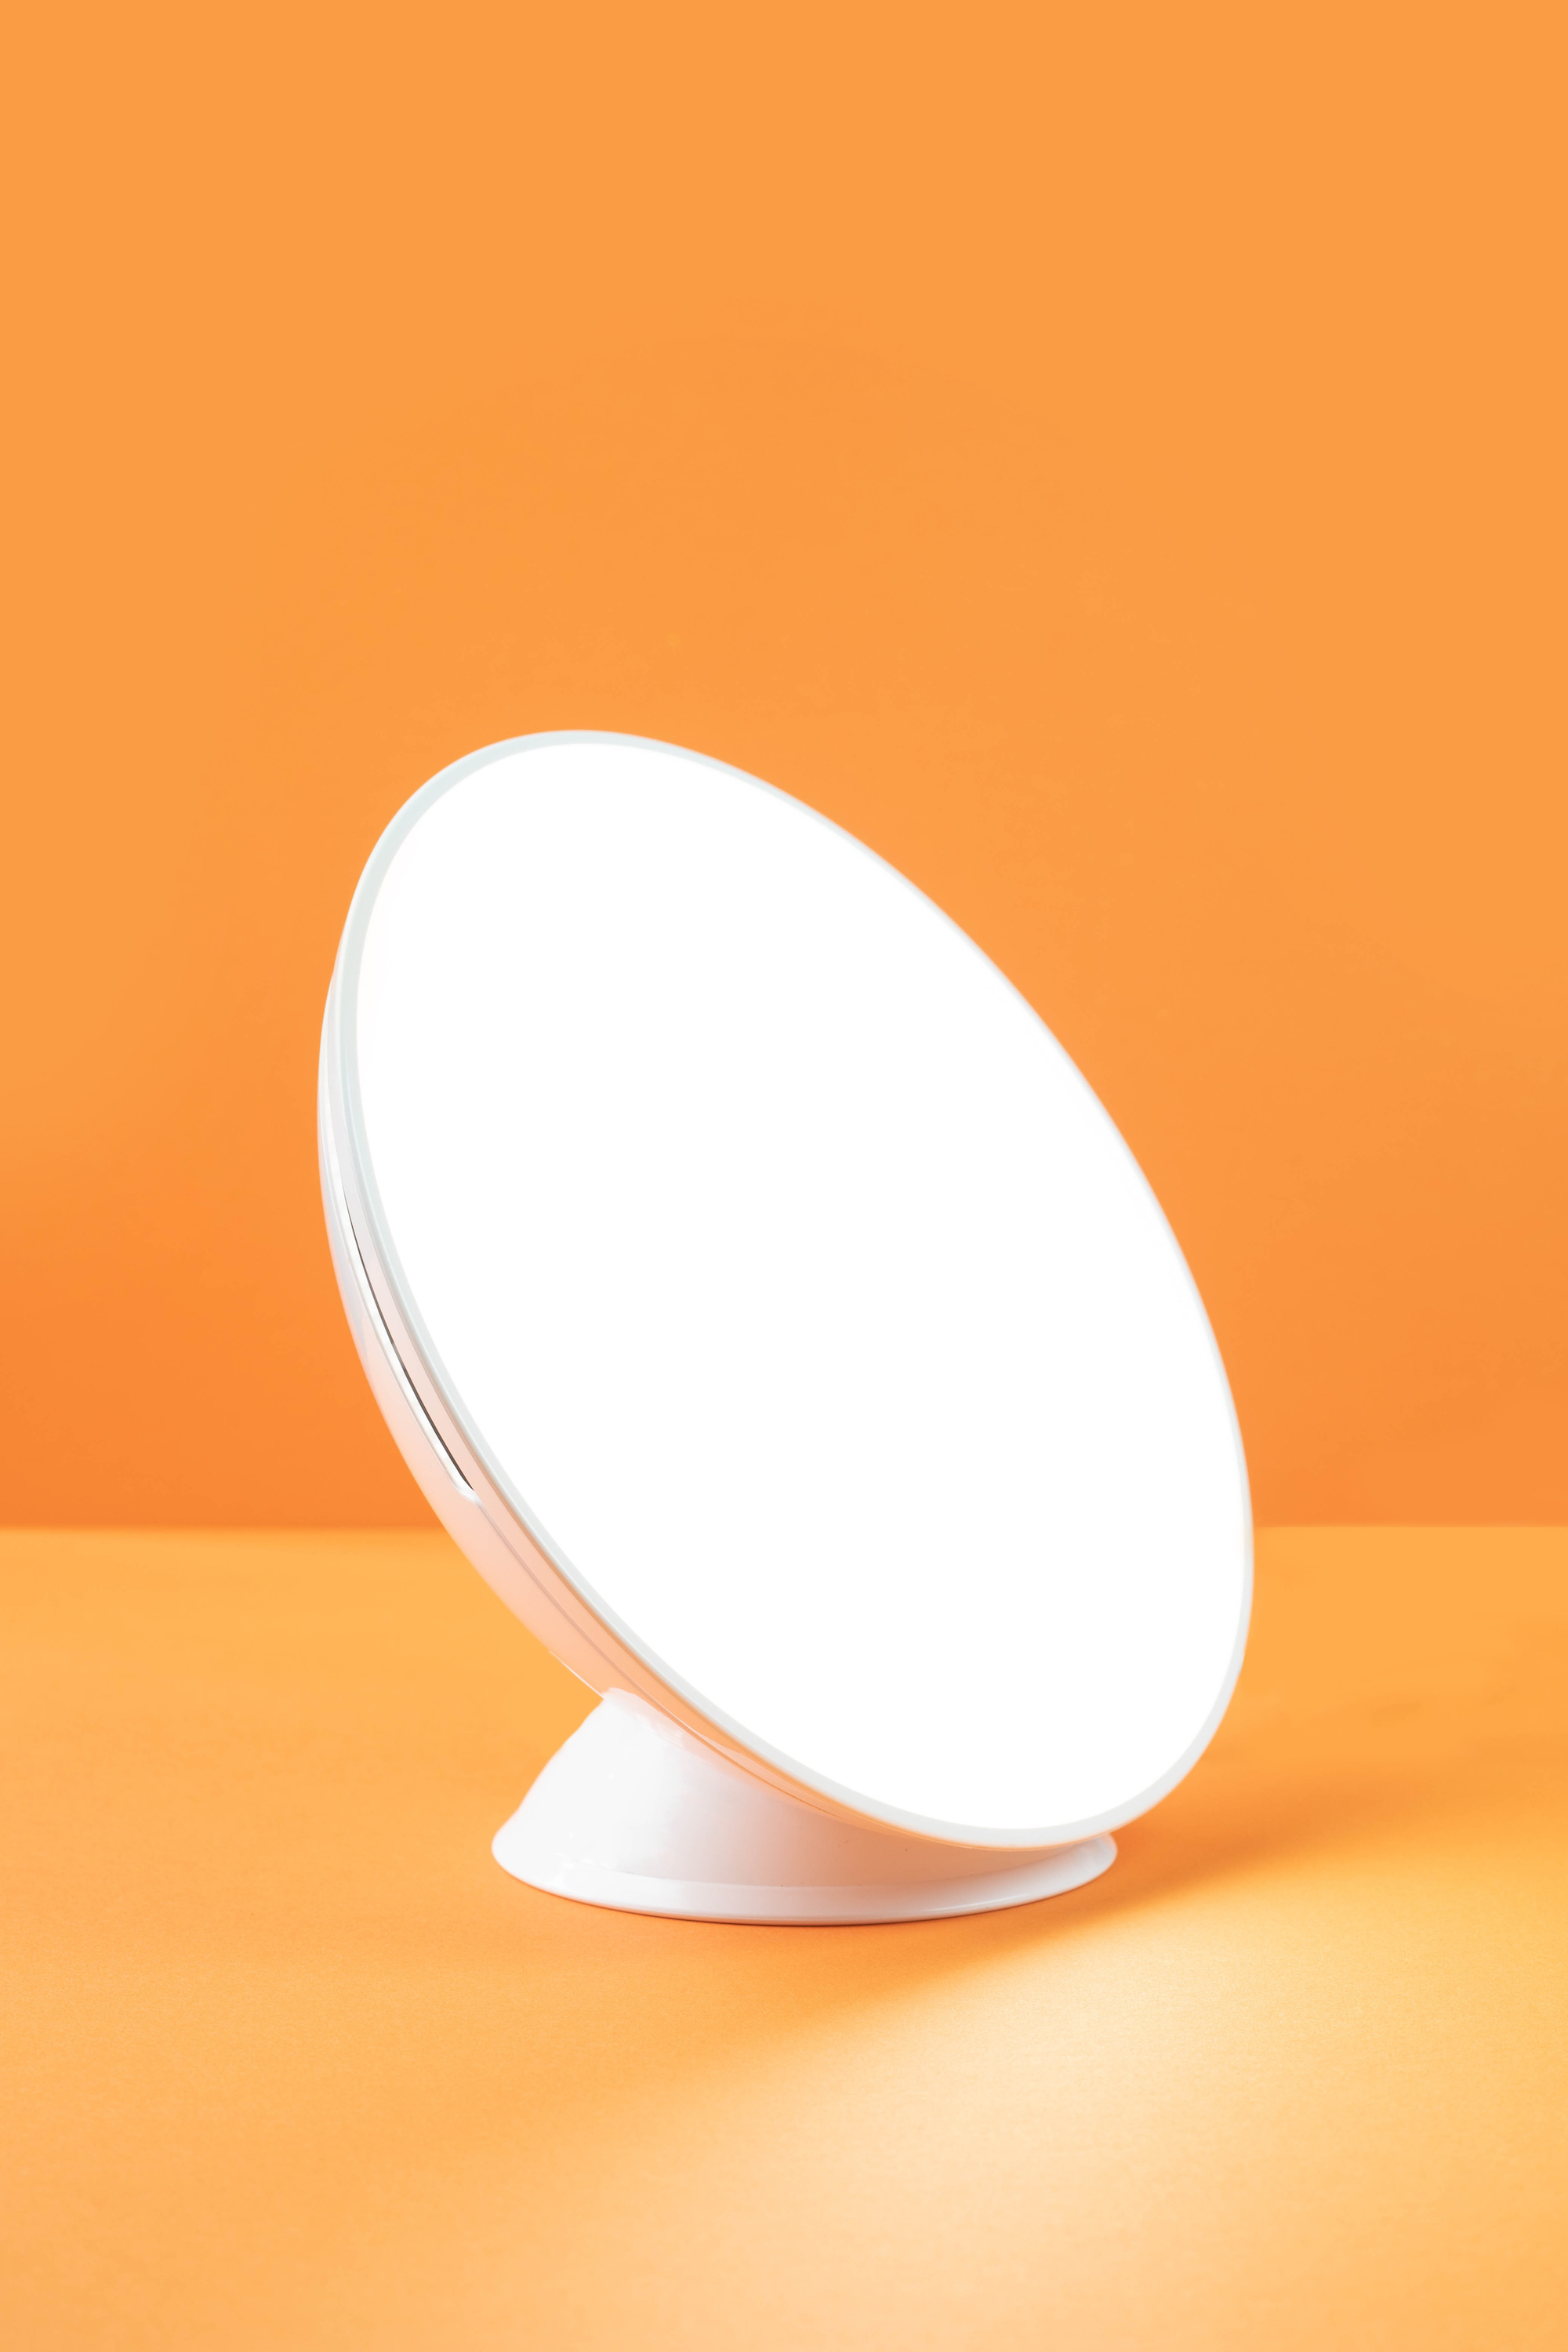 Lampu Left 45 - Orange BG.jpg